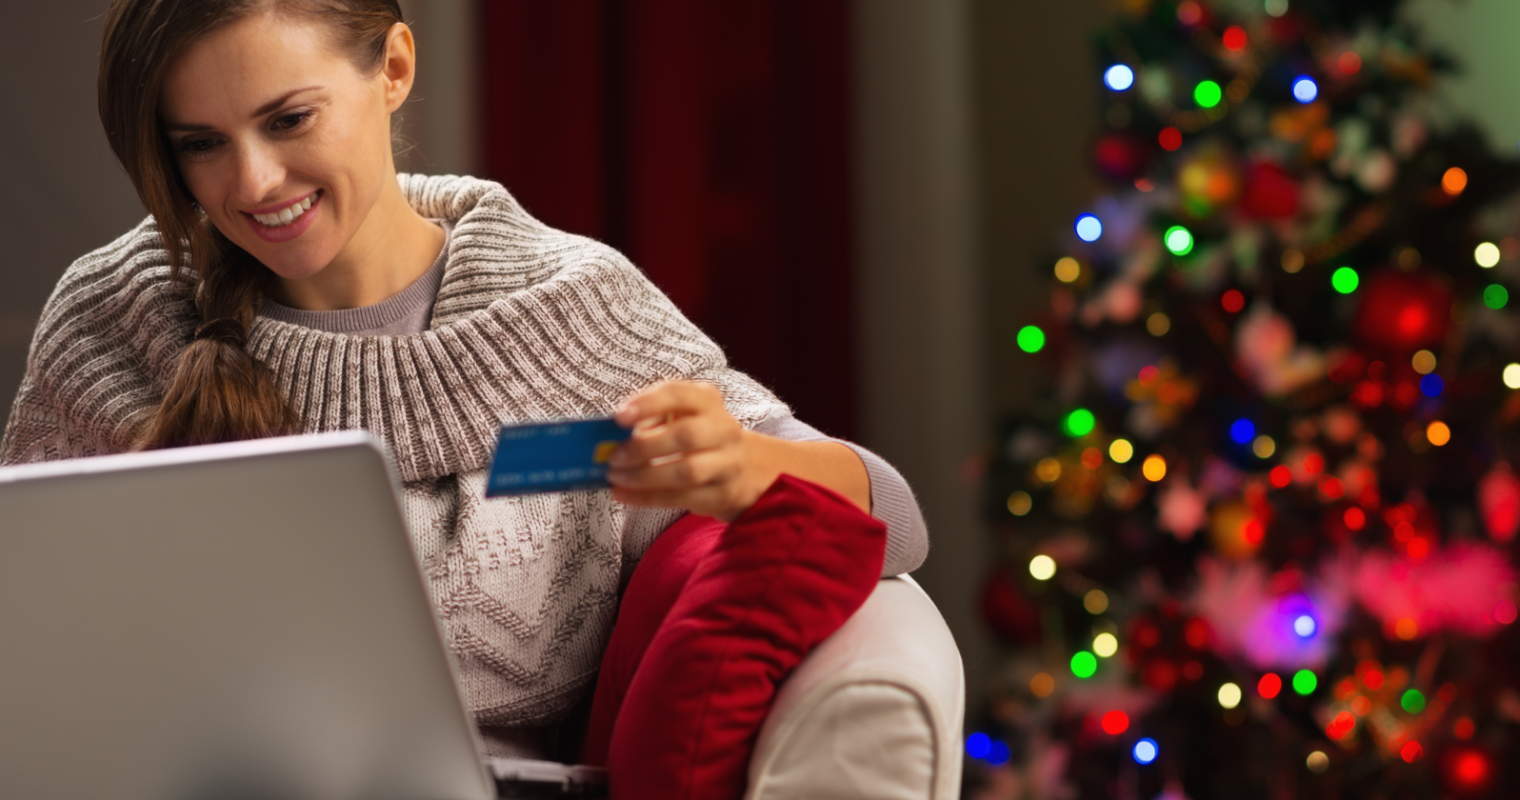 Bing Reveals the Top Holiday Queries for 2018